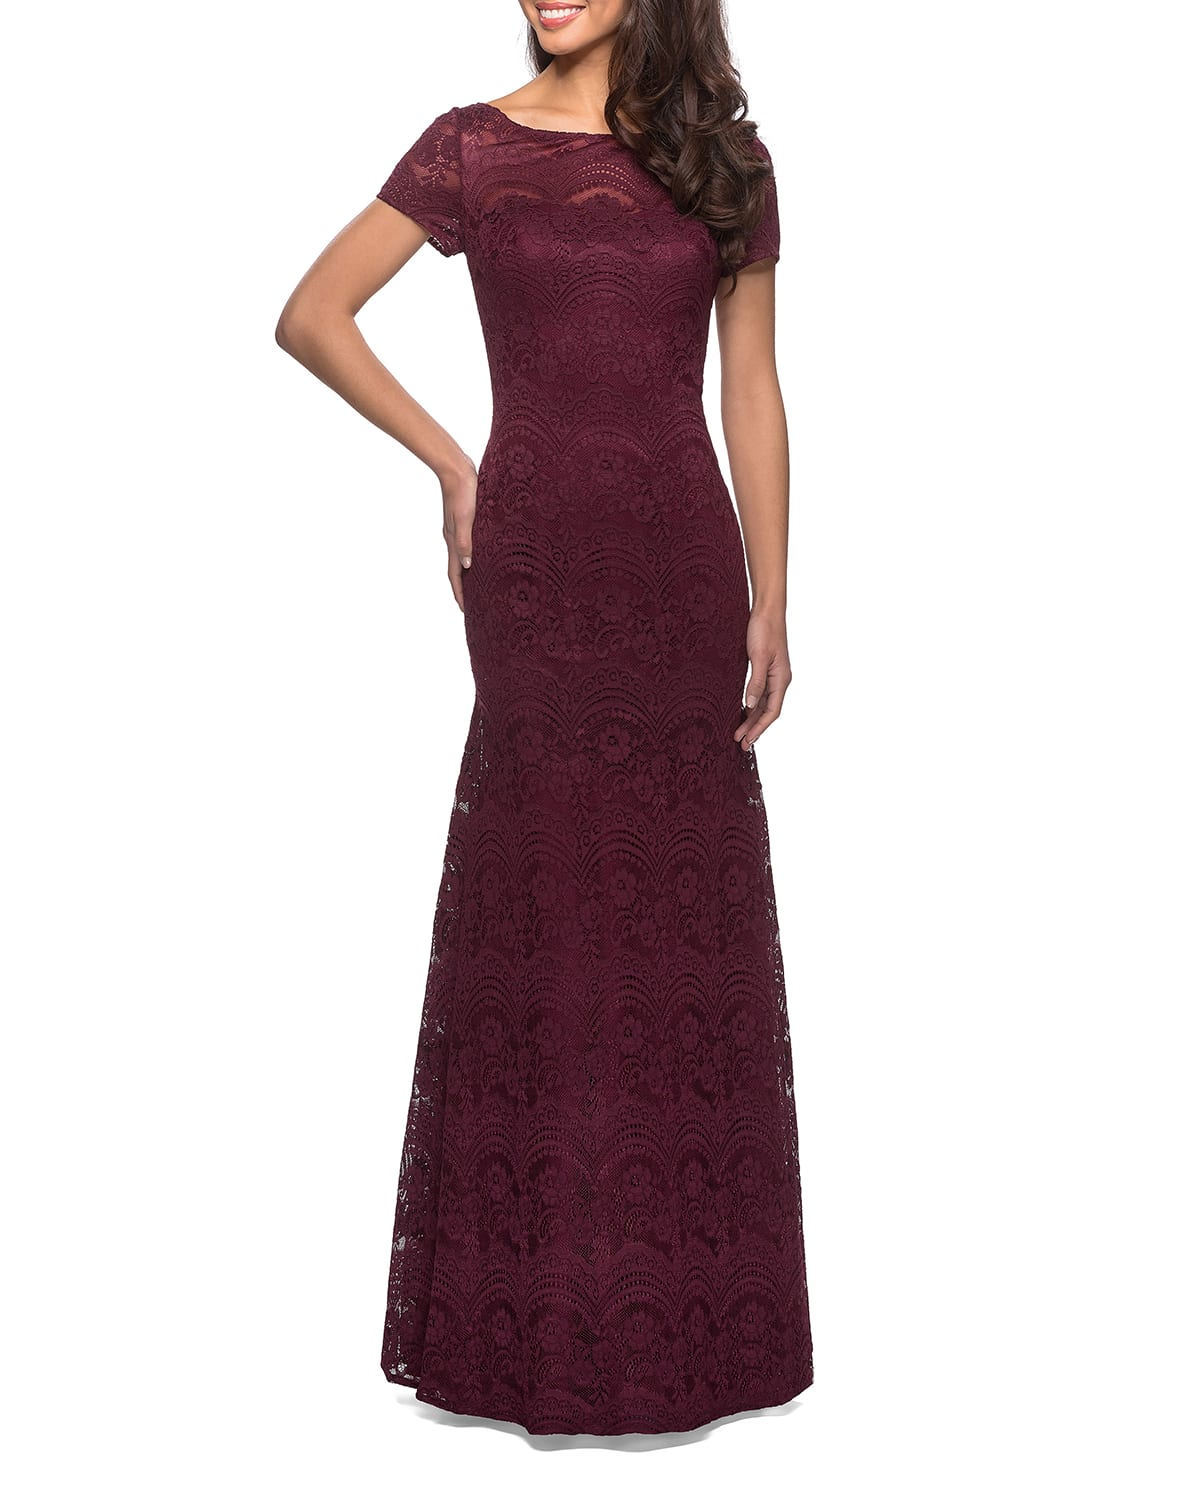 Floral Lace Short-Sleeve Gown